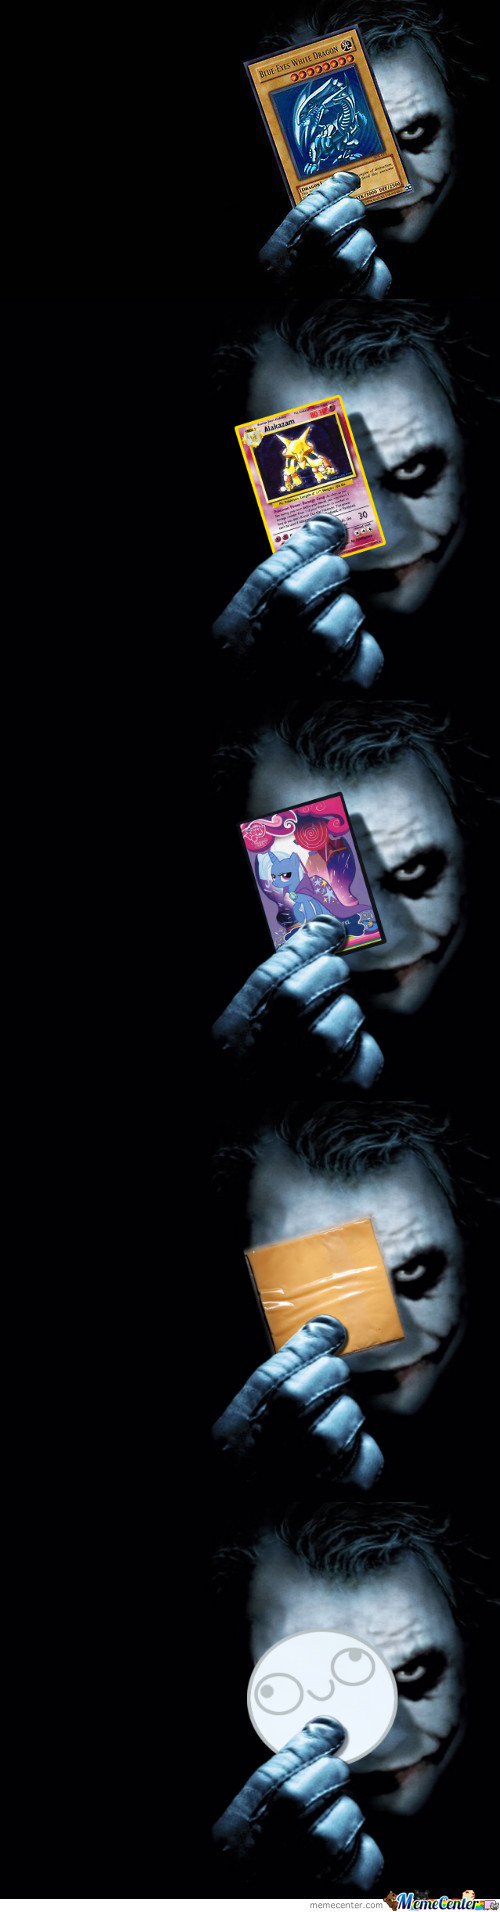 [RMX] The Joker's Trump Card